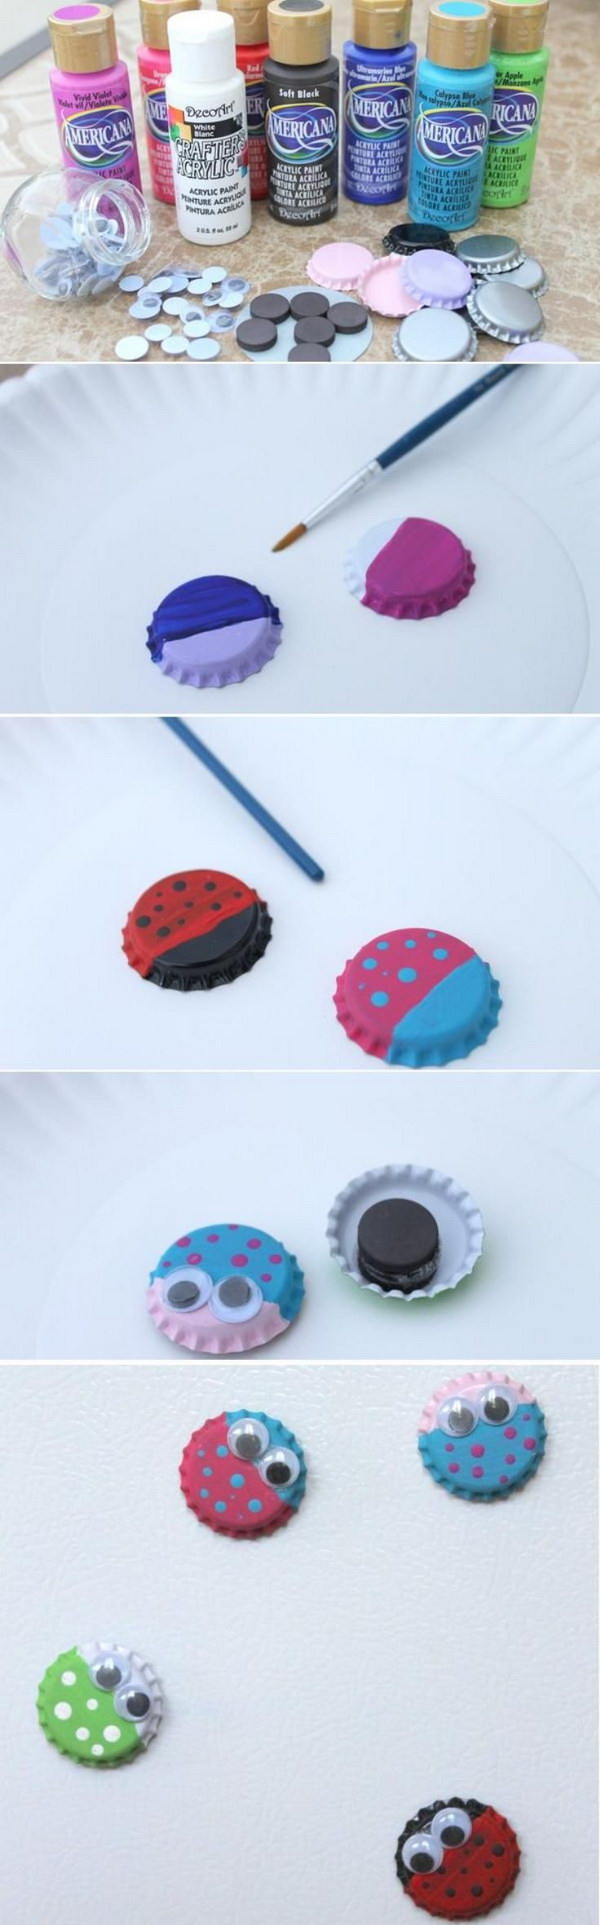 18 Awesome Ideas and Tutorials to Craft with Bottle Caps